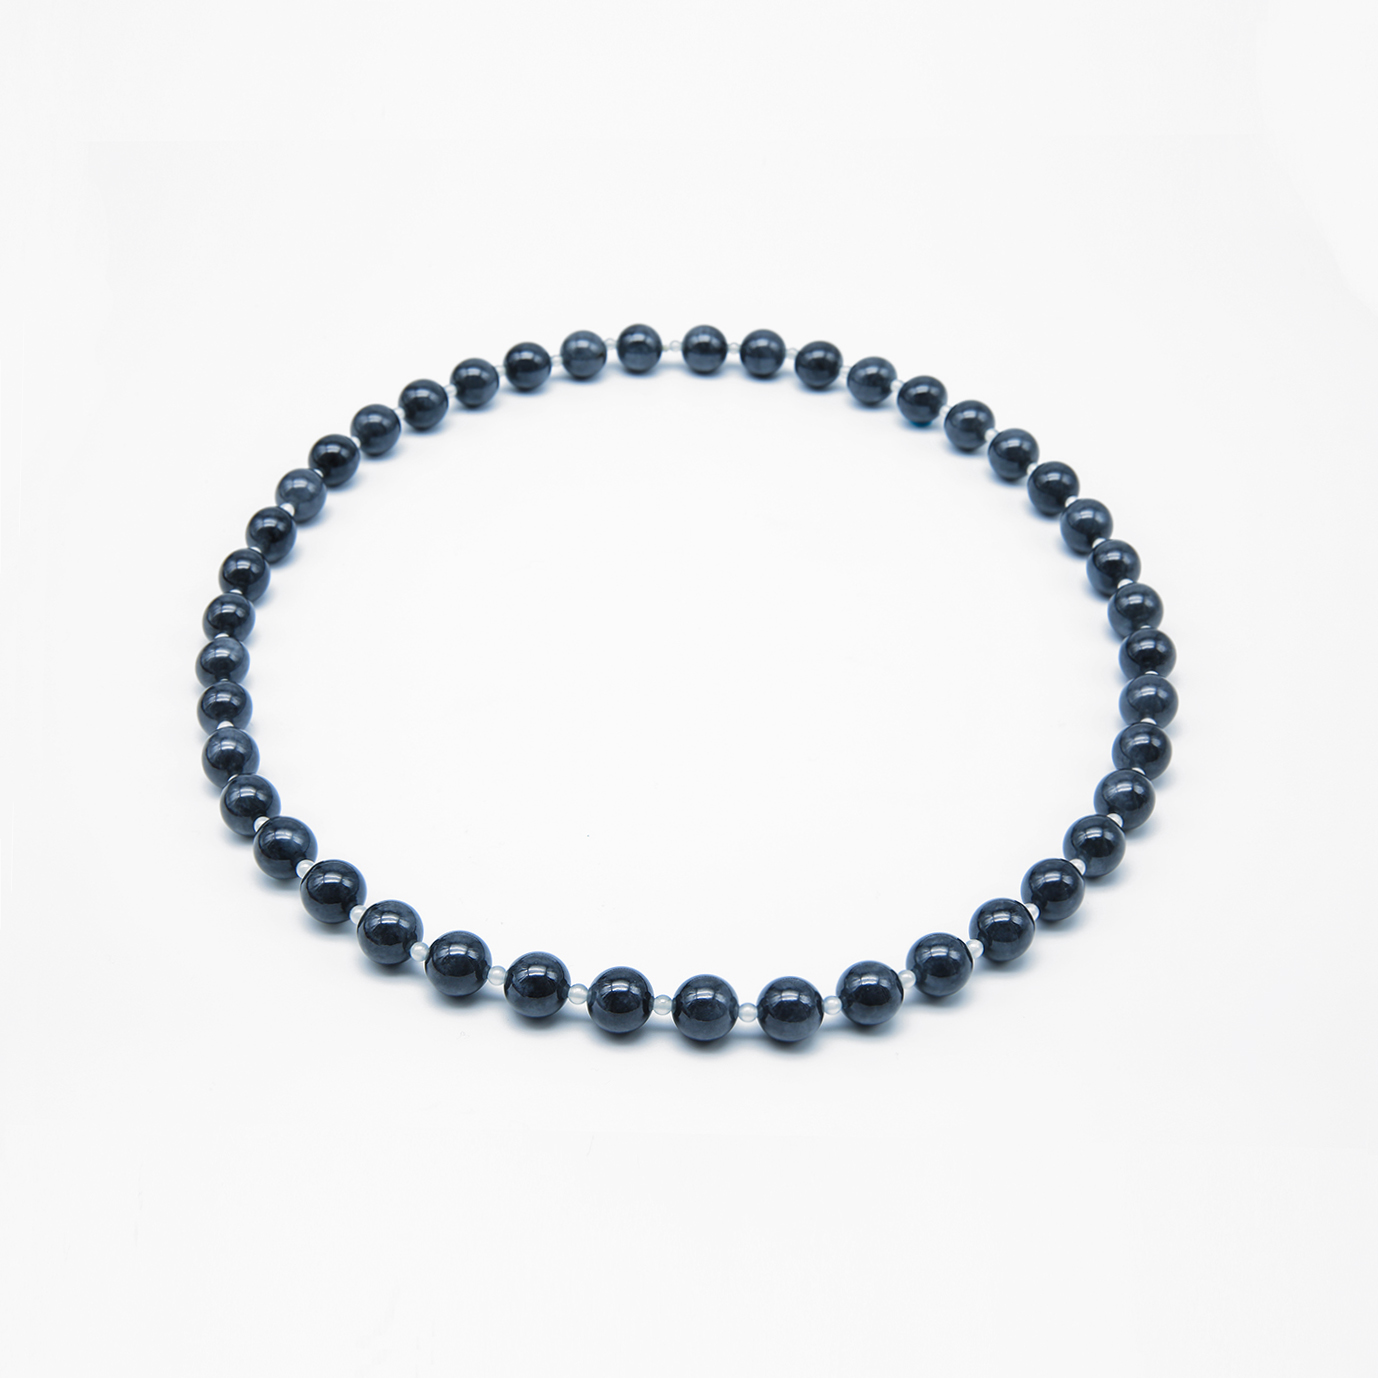 Icy Black with Clear Jadeite Jade Pearl Necklace